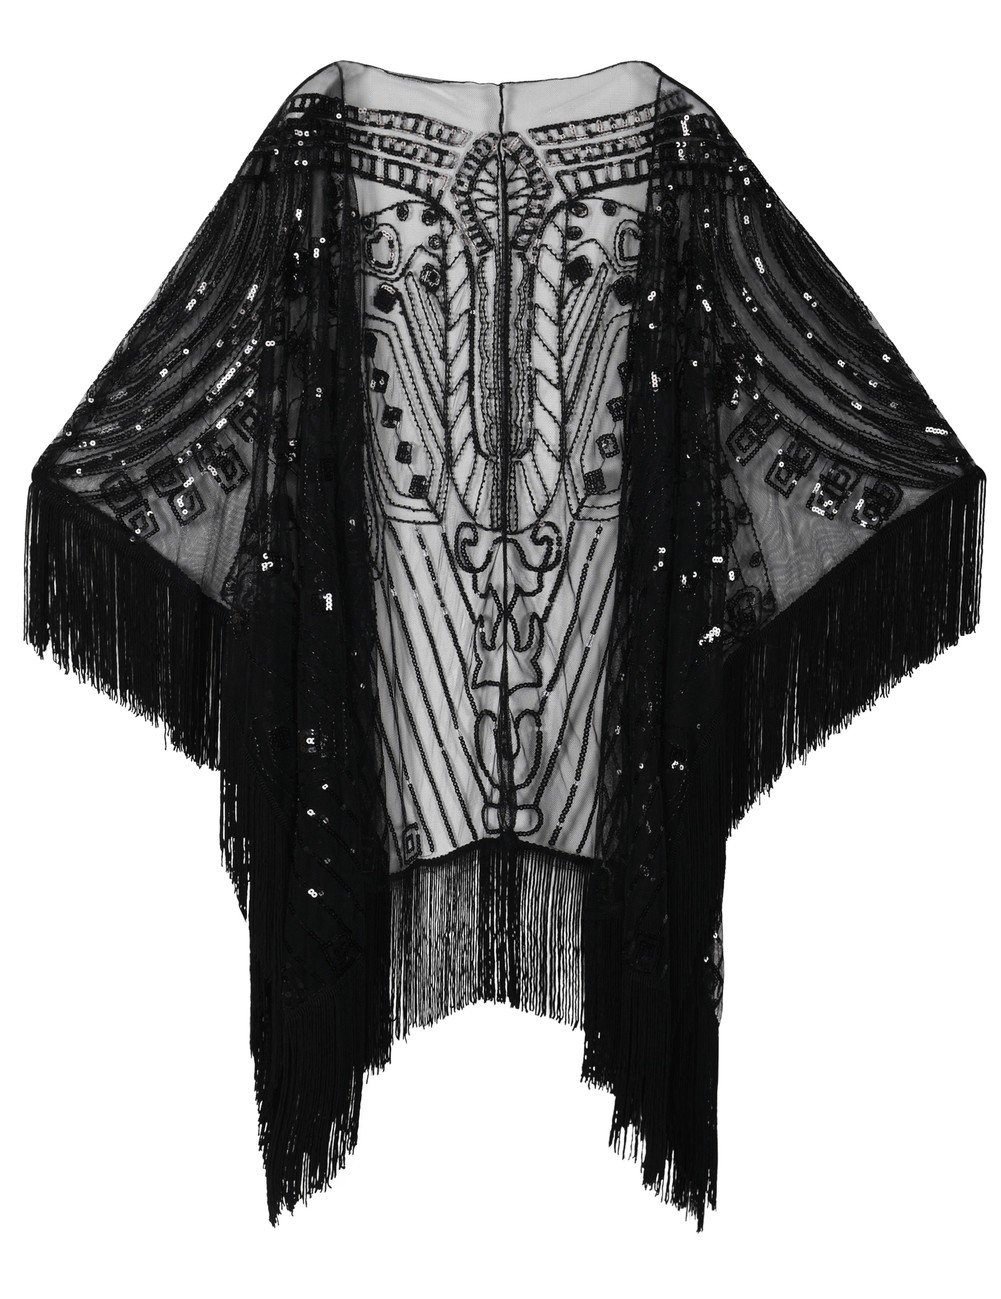 Downton Abbey Costumes Ideas Kayamiya Womens Evening Shawl Wraps 1920s Sequin Beaded Cape With Fringe $33.99 AT vintagedancer.com